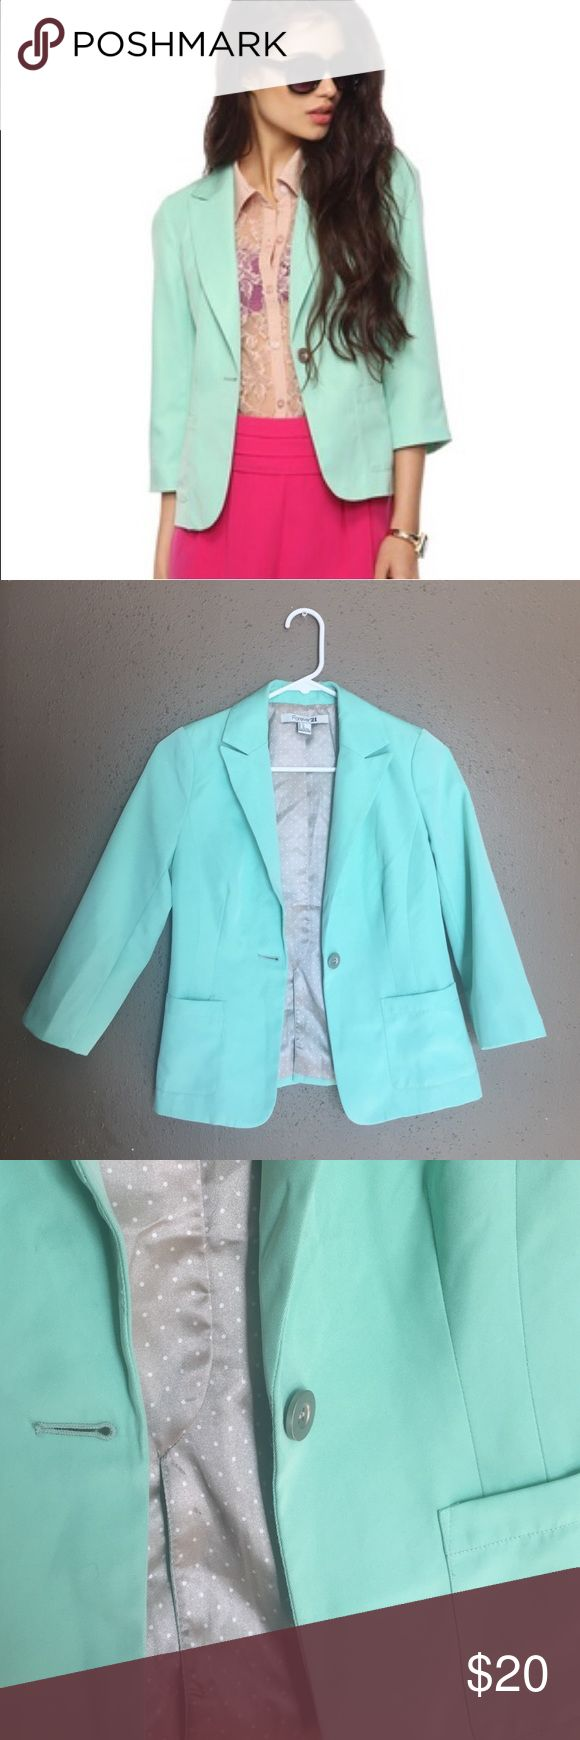 Forever 21 mint blazer Super adorable mint blazer that I am so sad to see leave my closet! The inside is a silk polka dot pattern and the outside has pockets and accent buttons on the sleeves. The material is 100% polyester. No flaws, in amazing condition!! Forever 21 Jackets & Coats Blazers